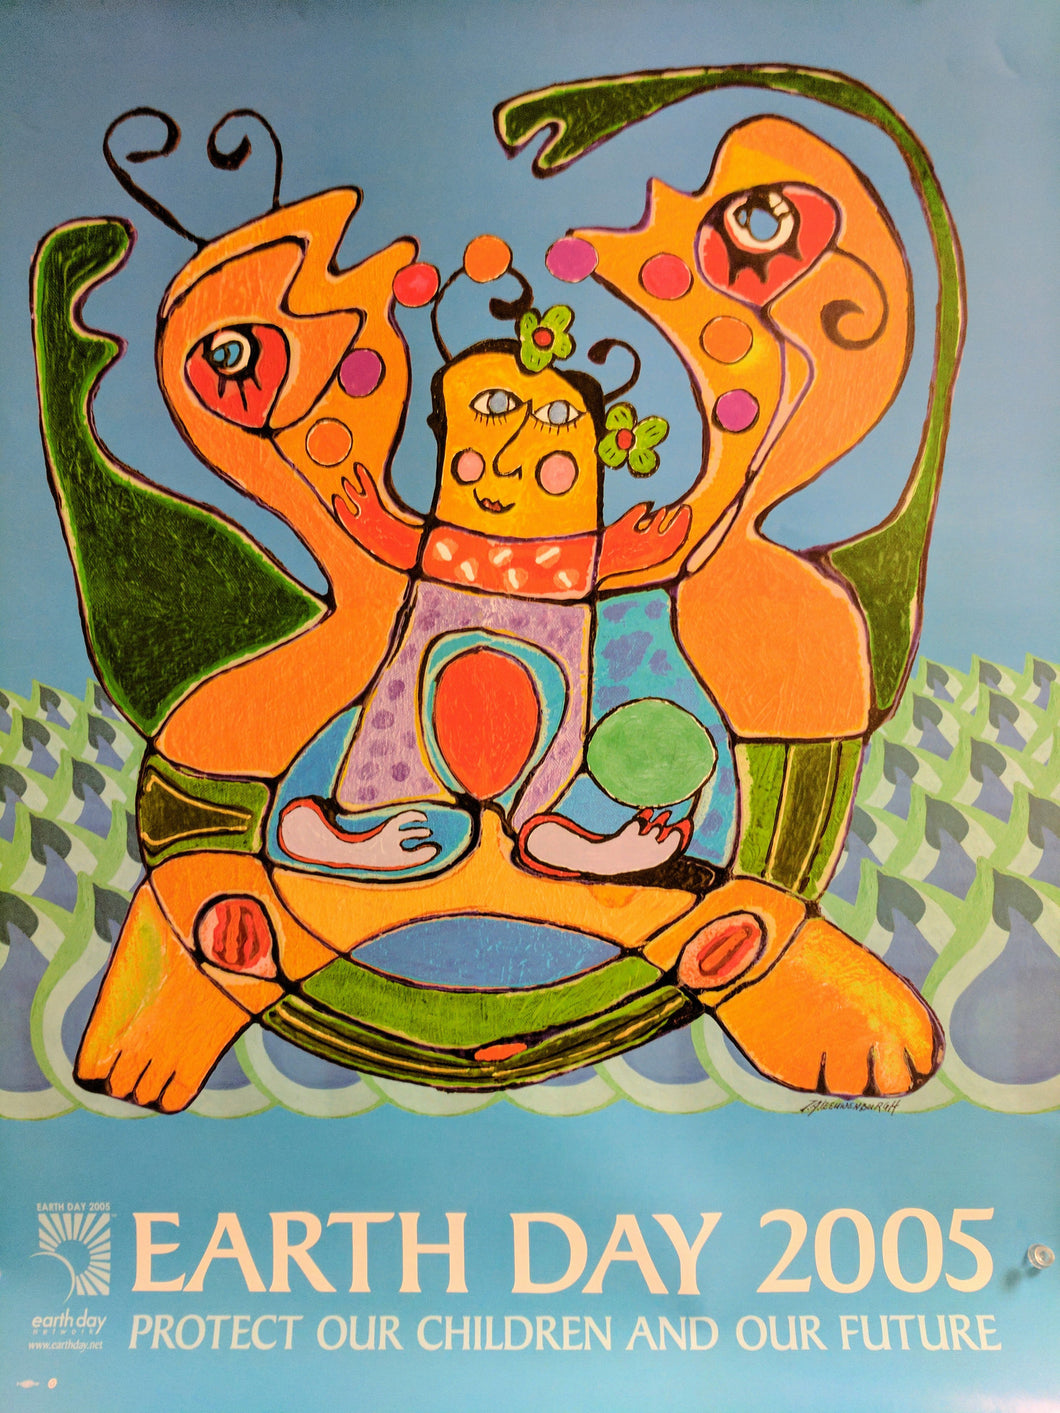 Earth Day 2005